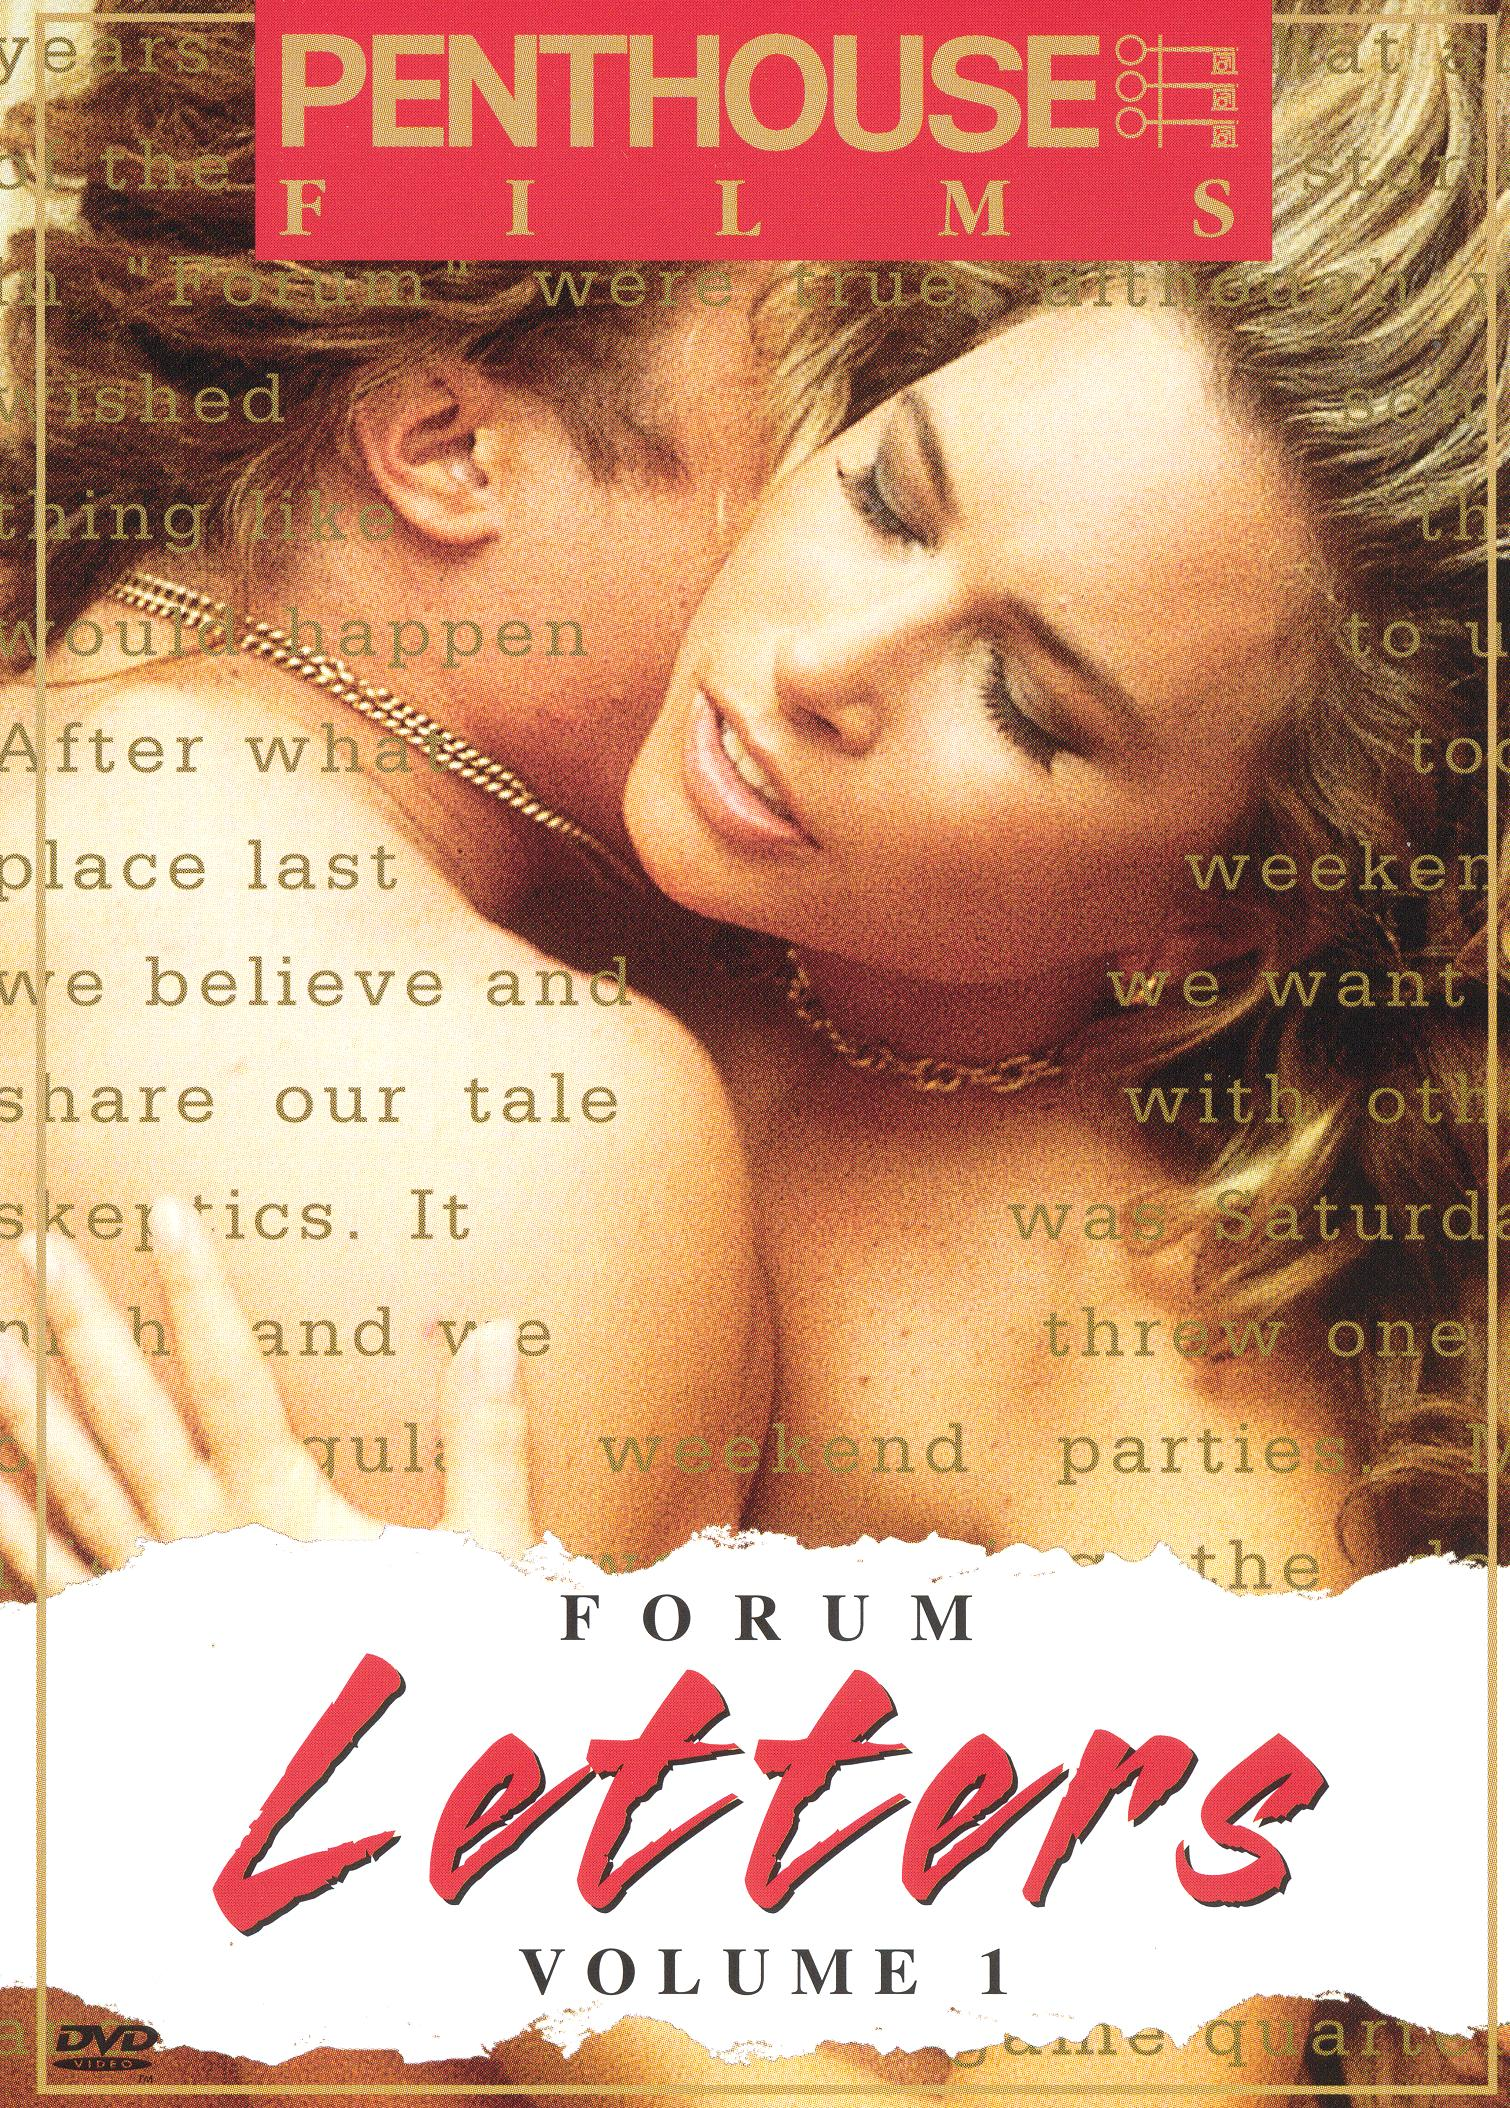 Penthouse: Forum Letters, Vol. 1